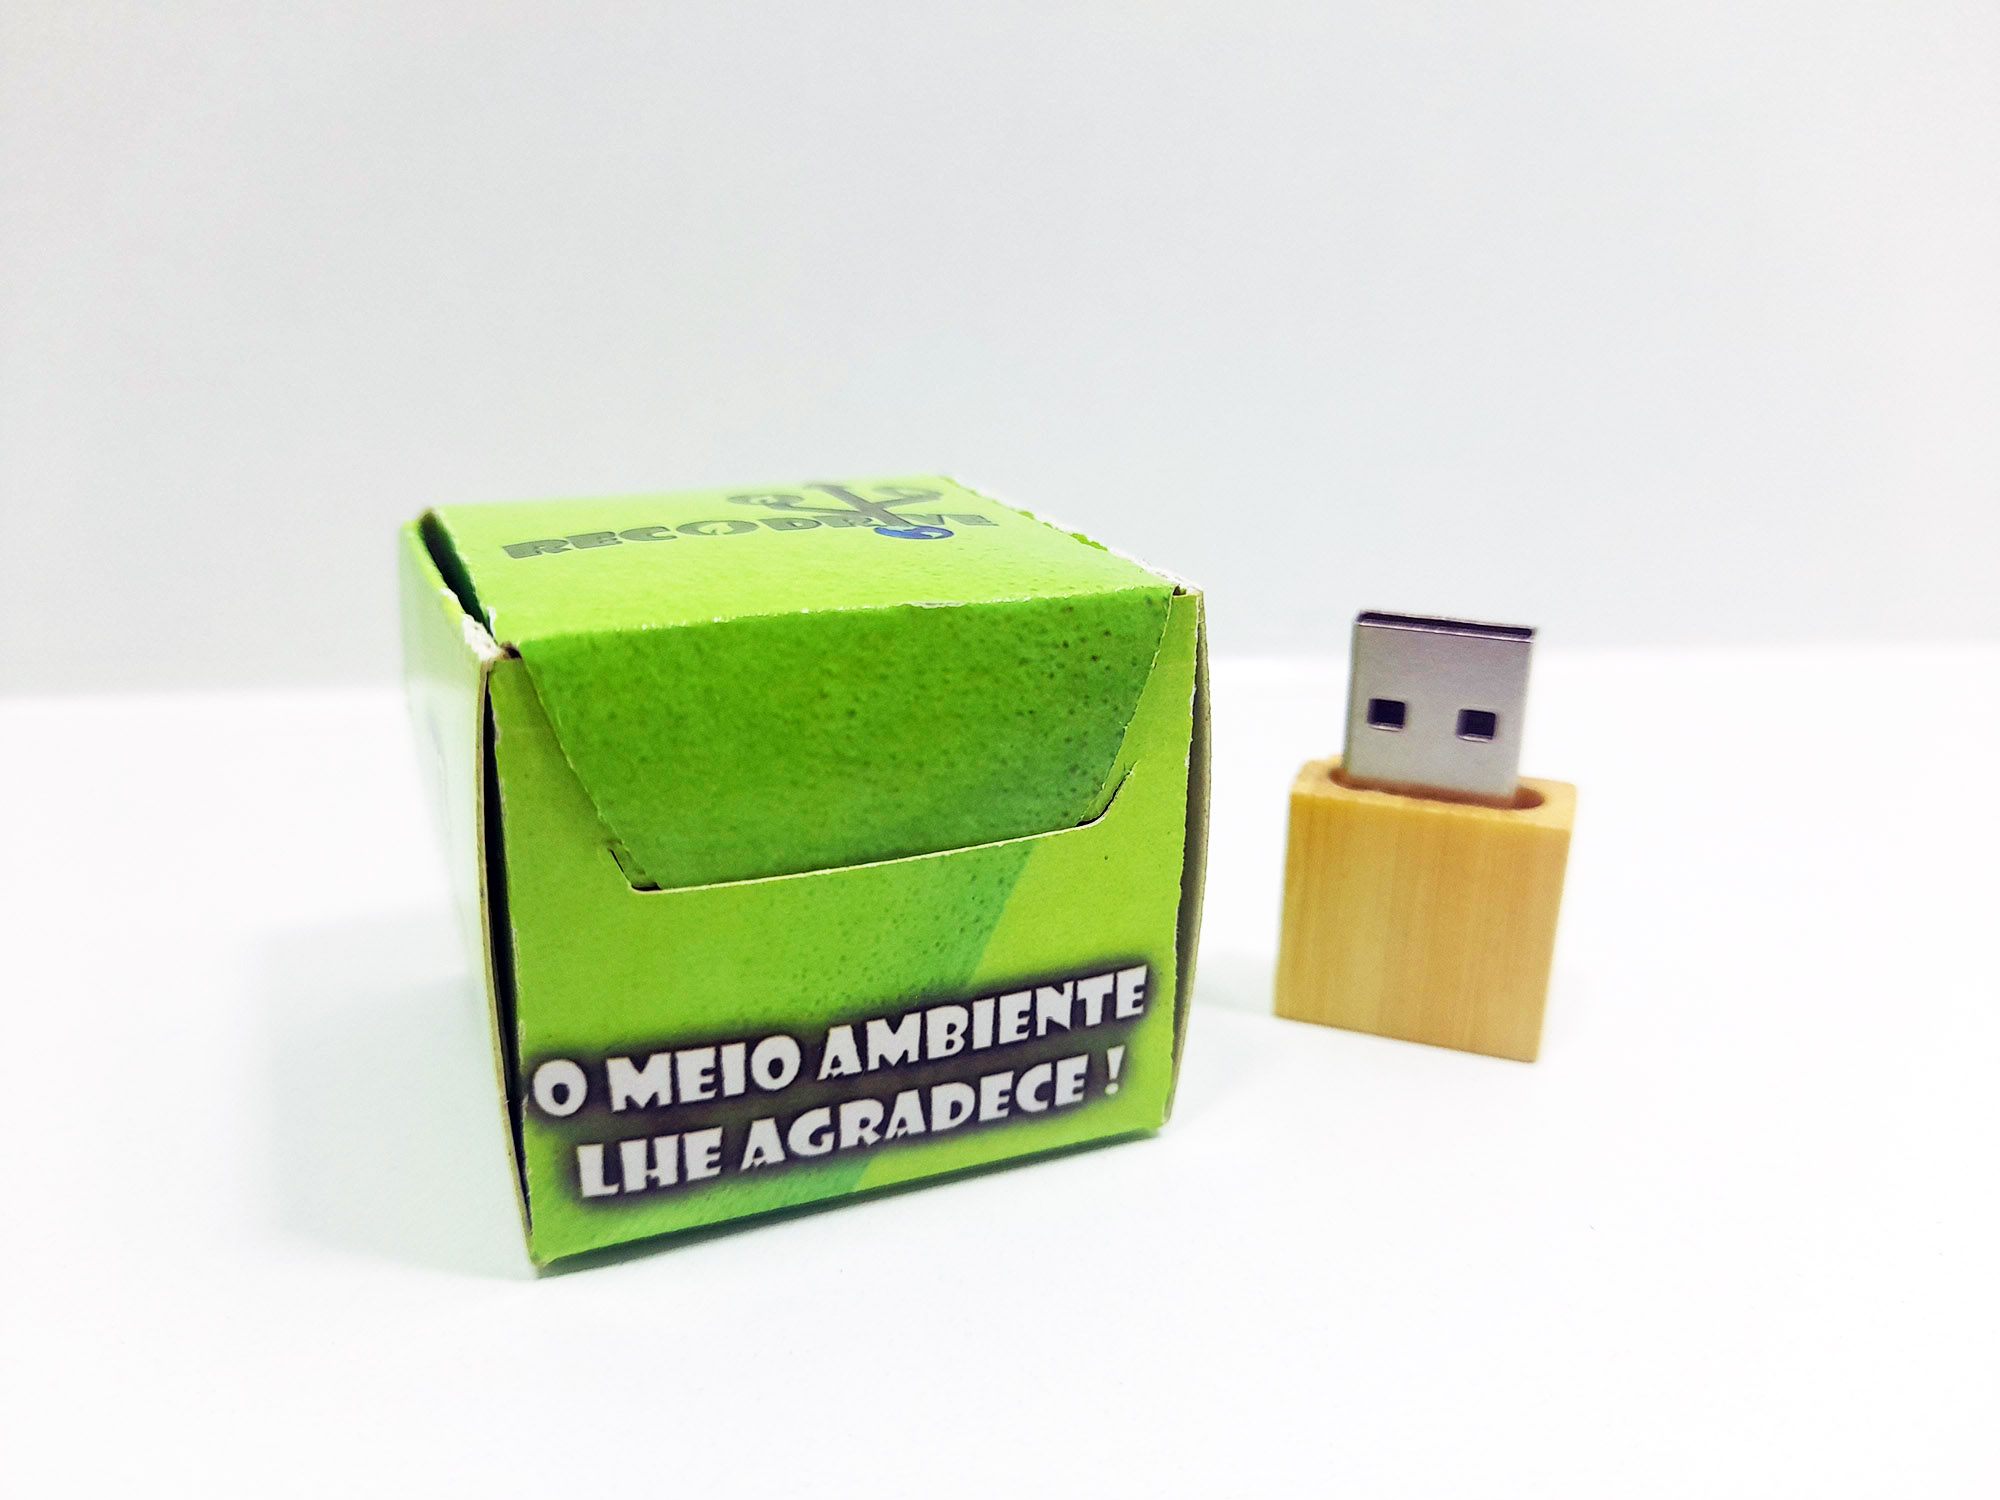 Linha rECOdrive - Pendrives Ecologicos Sustentáveis - Fit Wood 8 GB e 16 GB - Exclusivo